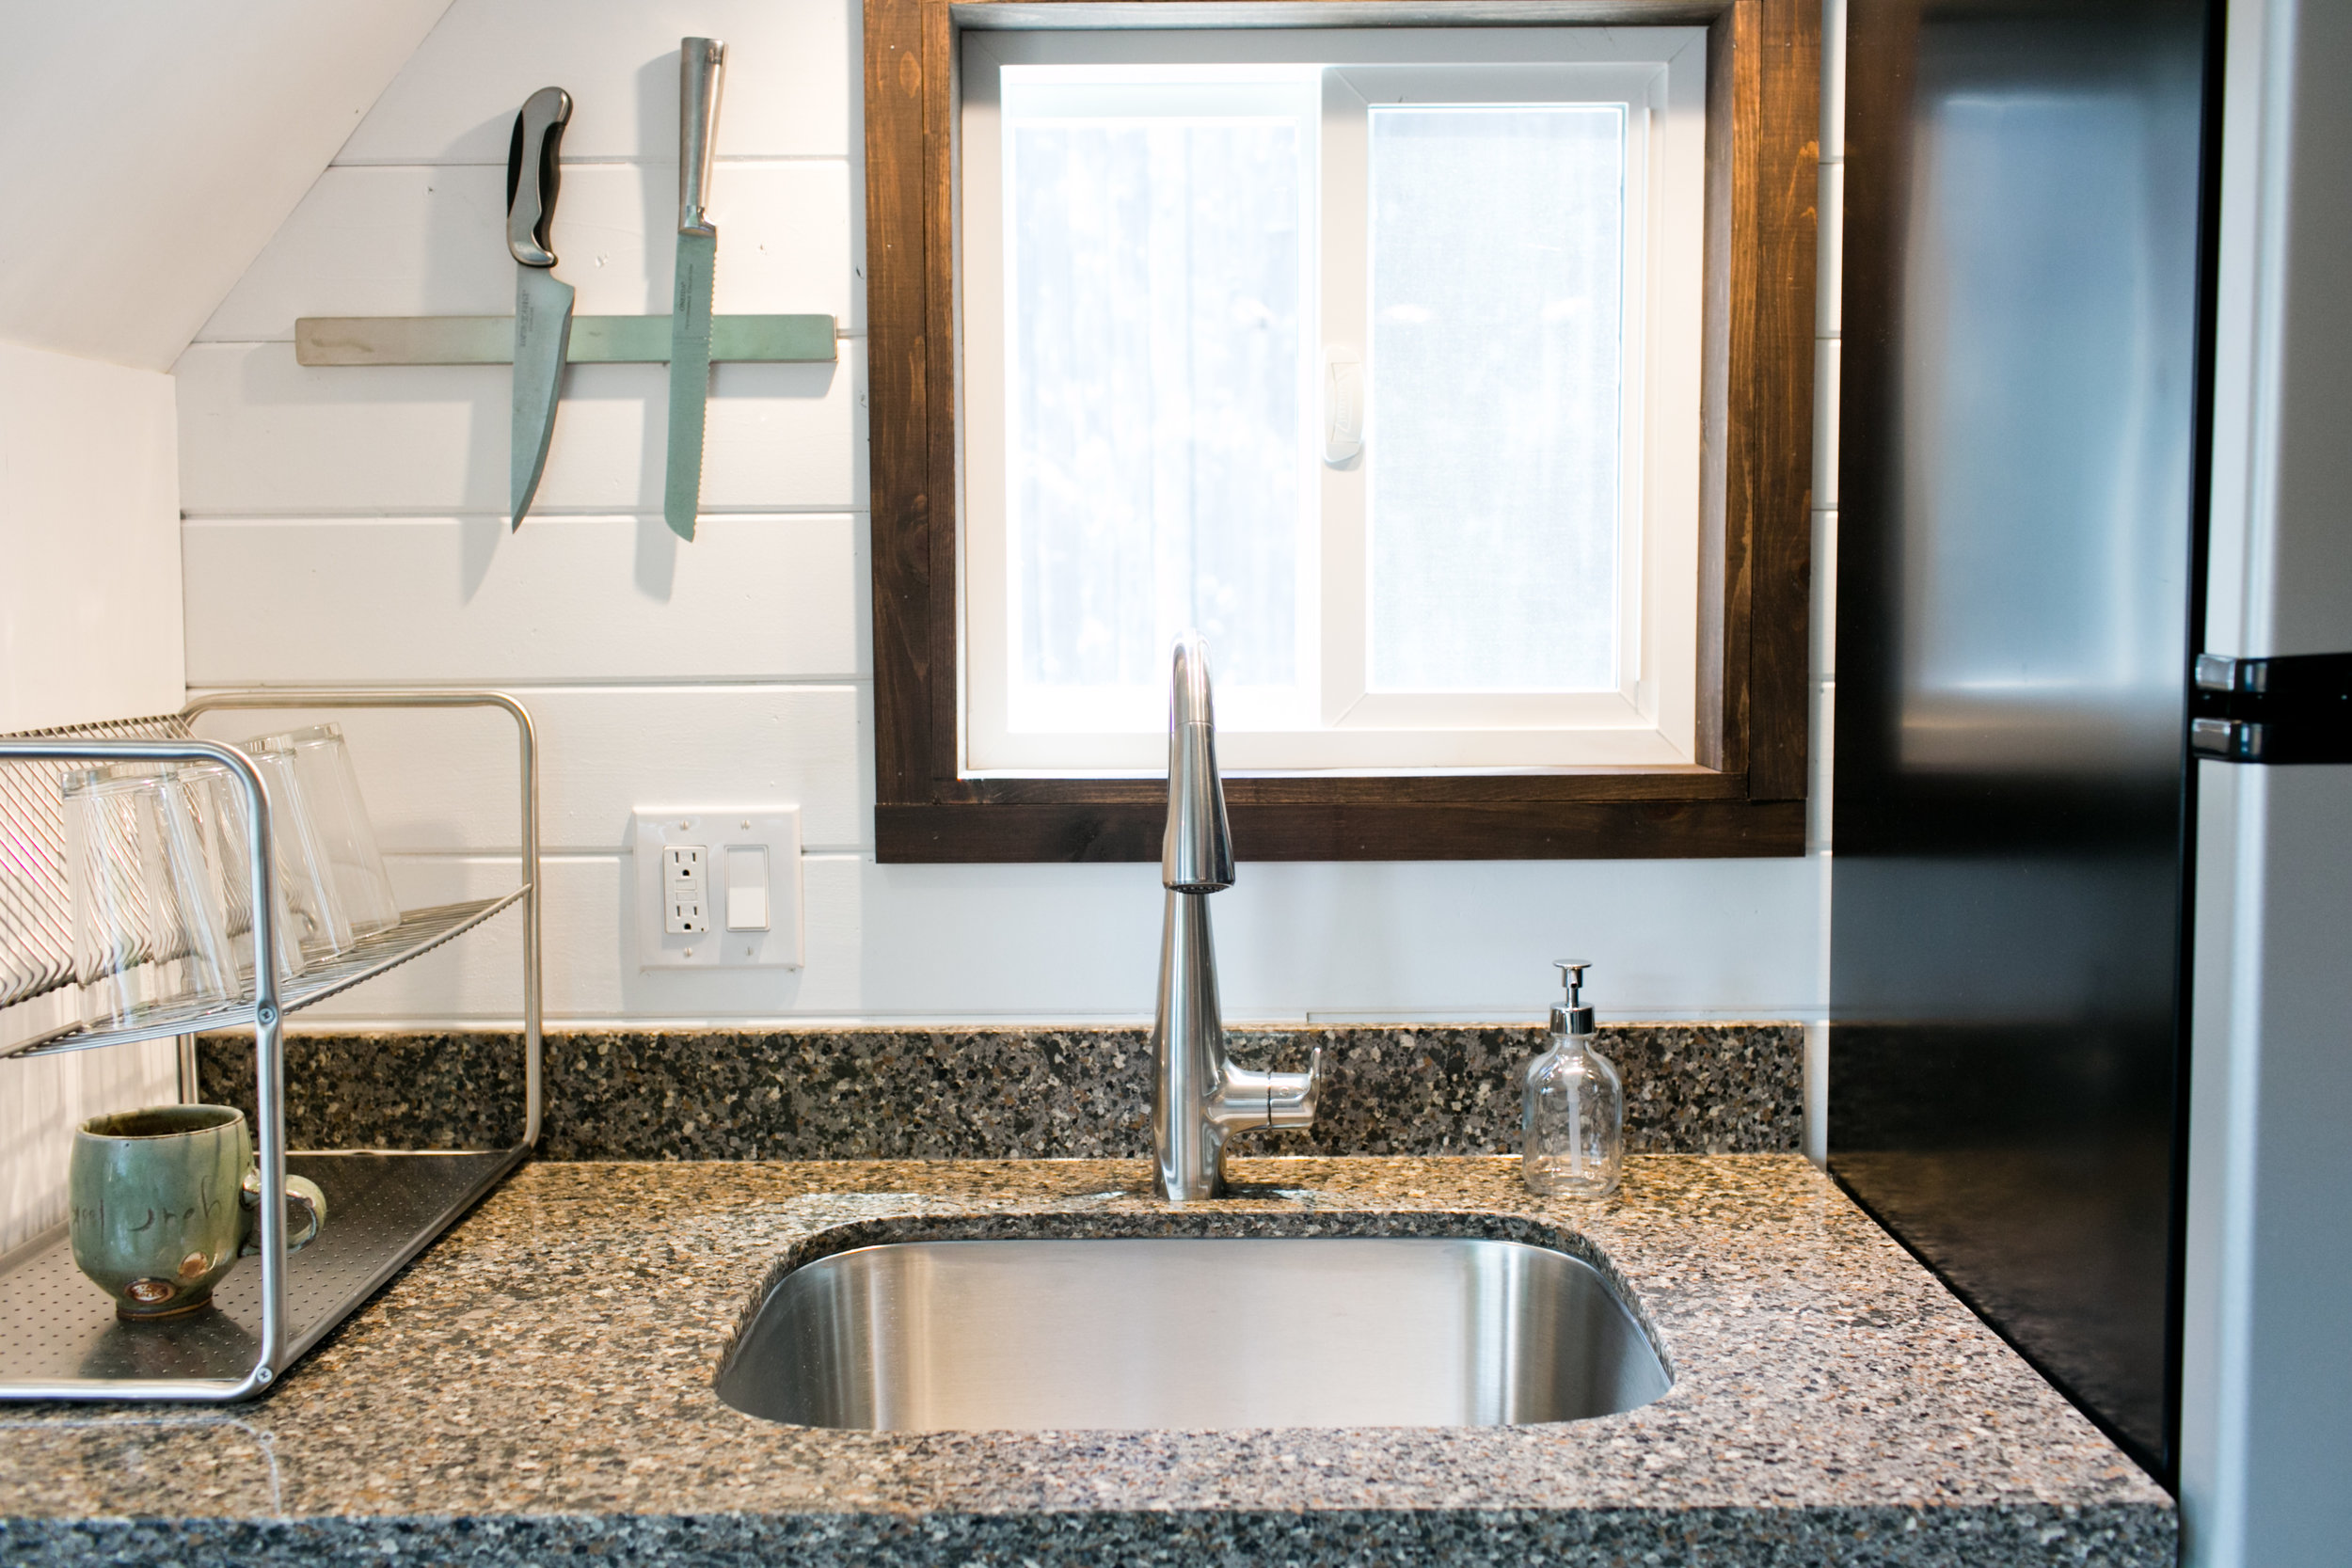 Large under counter mounted stainless sink